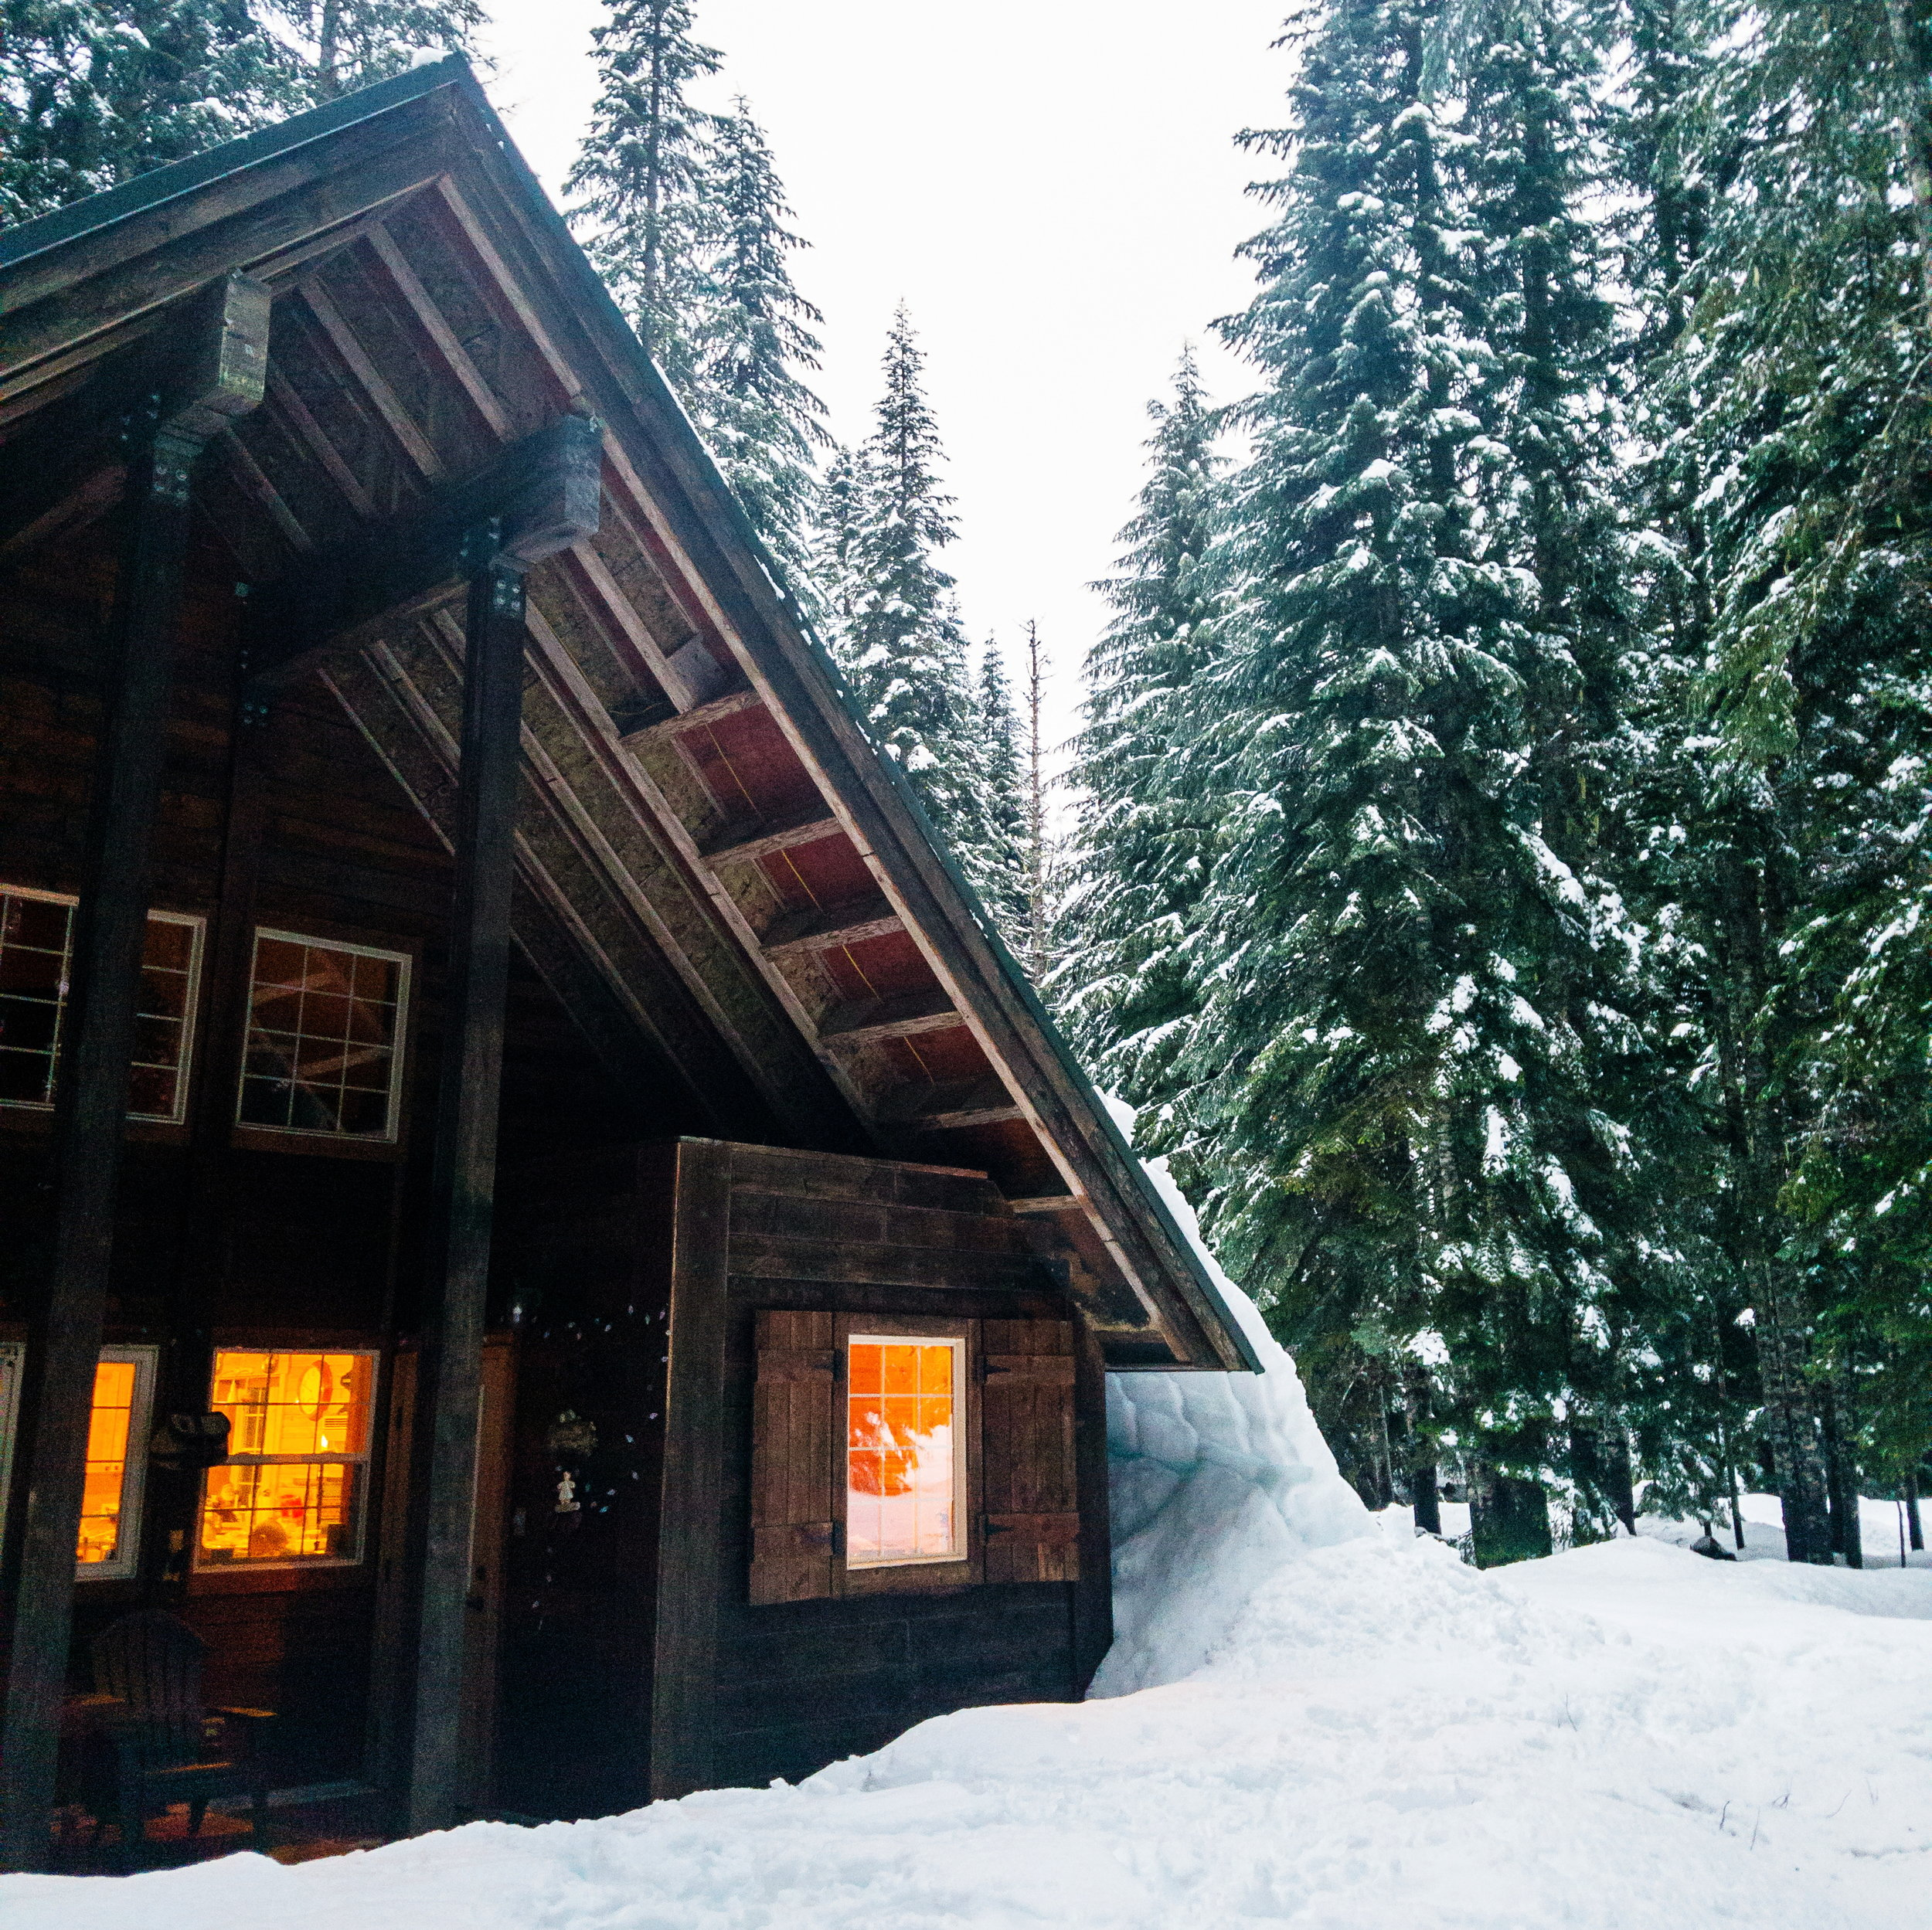 The cabin looks so cozy blanketed in snow!